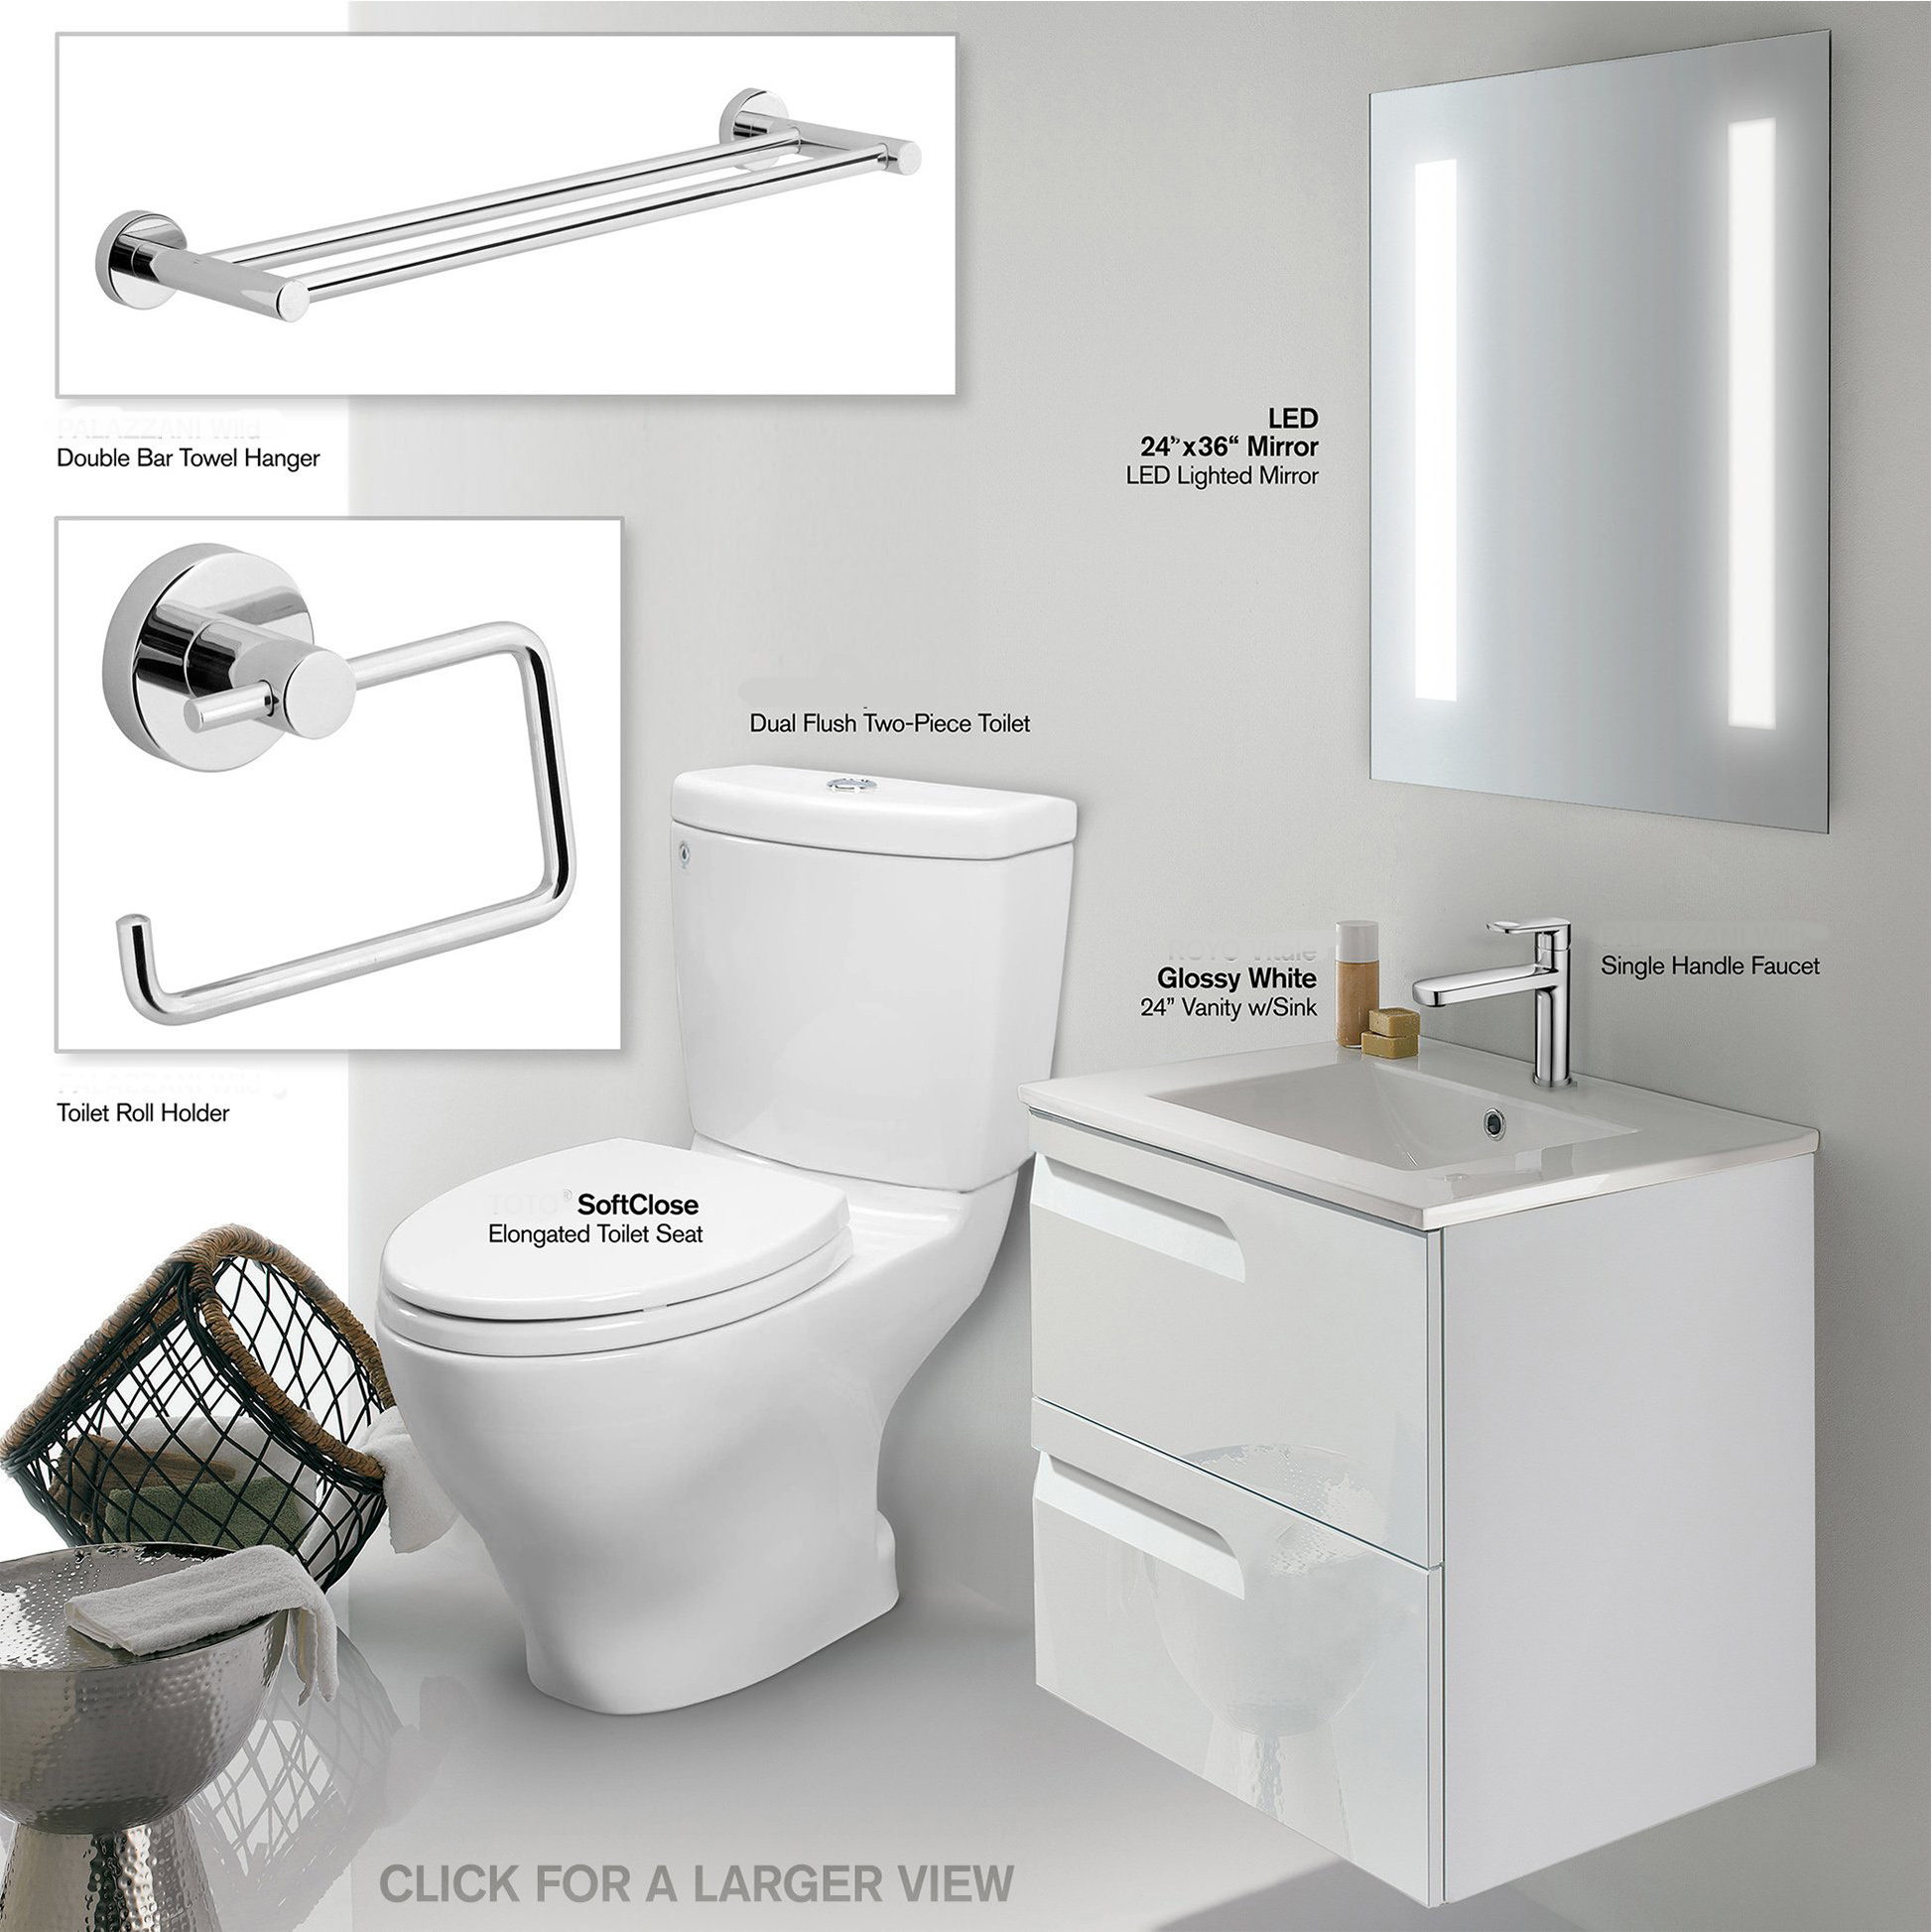 chinese factory wholesale white bathroom vanity with metal legs rh m made in china com Bathroom Sinks with Metal Stands Bathroom Vanities with Legs